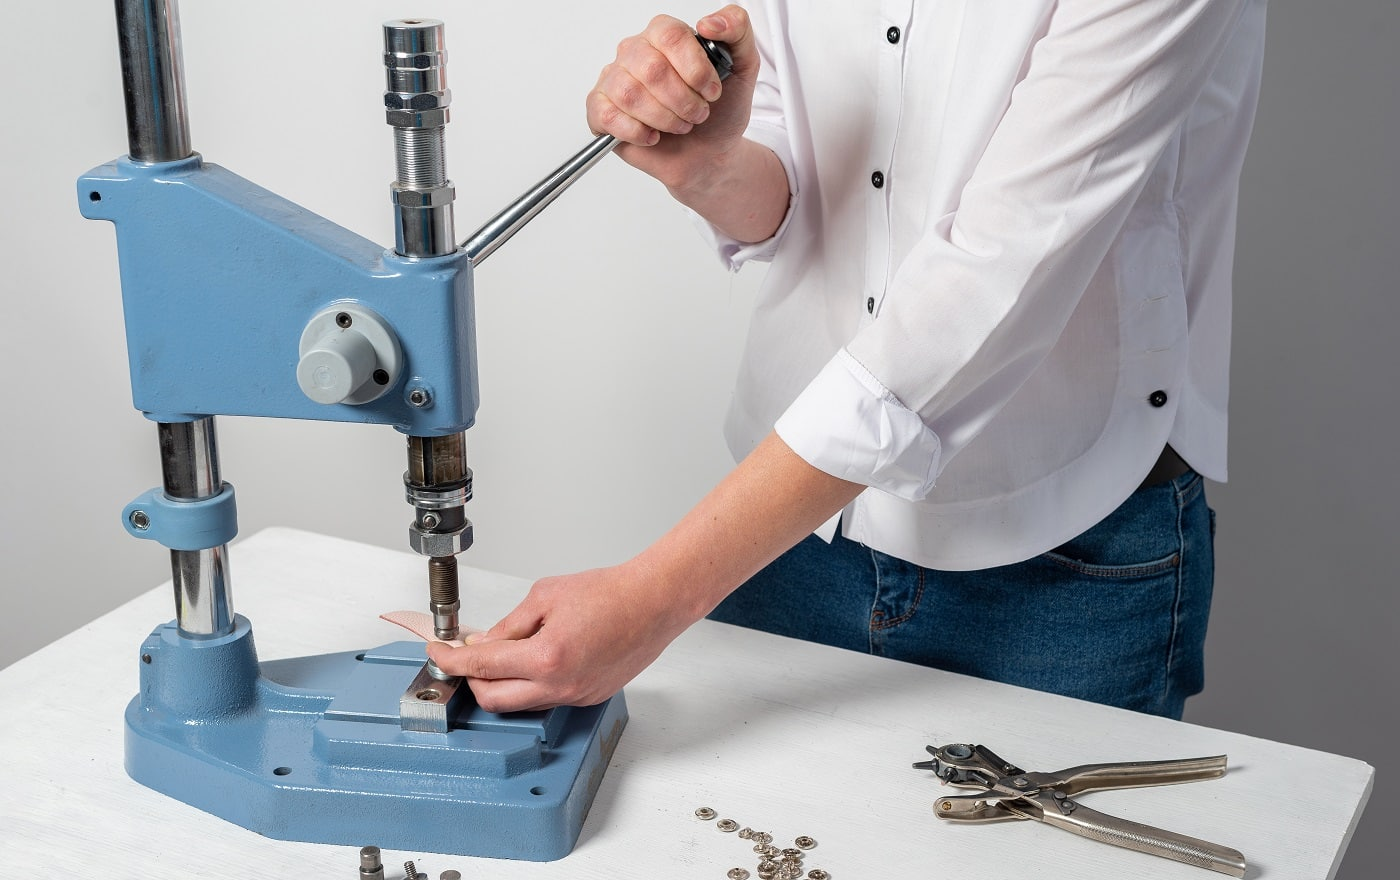 the hands of the master make holes for the buttons on a special installation press